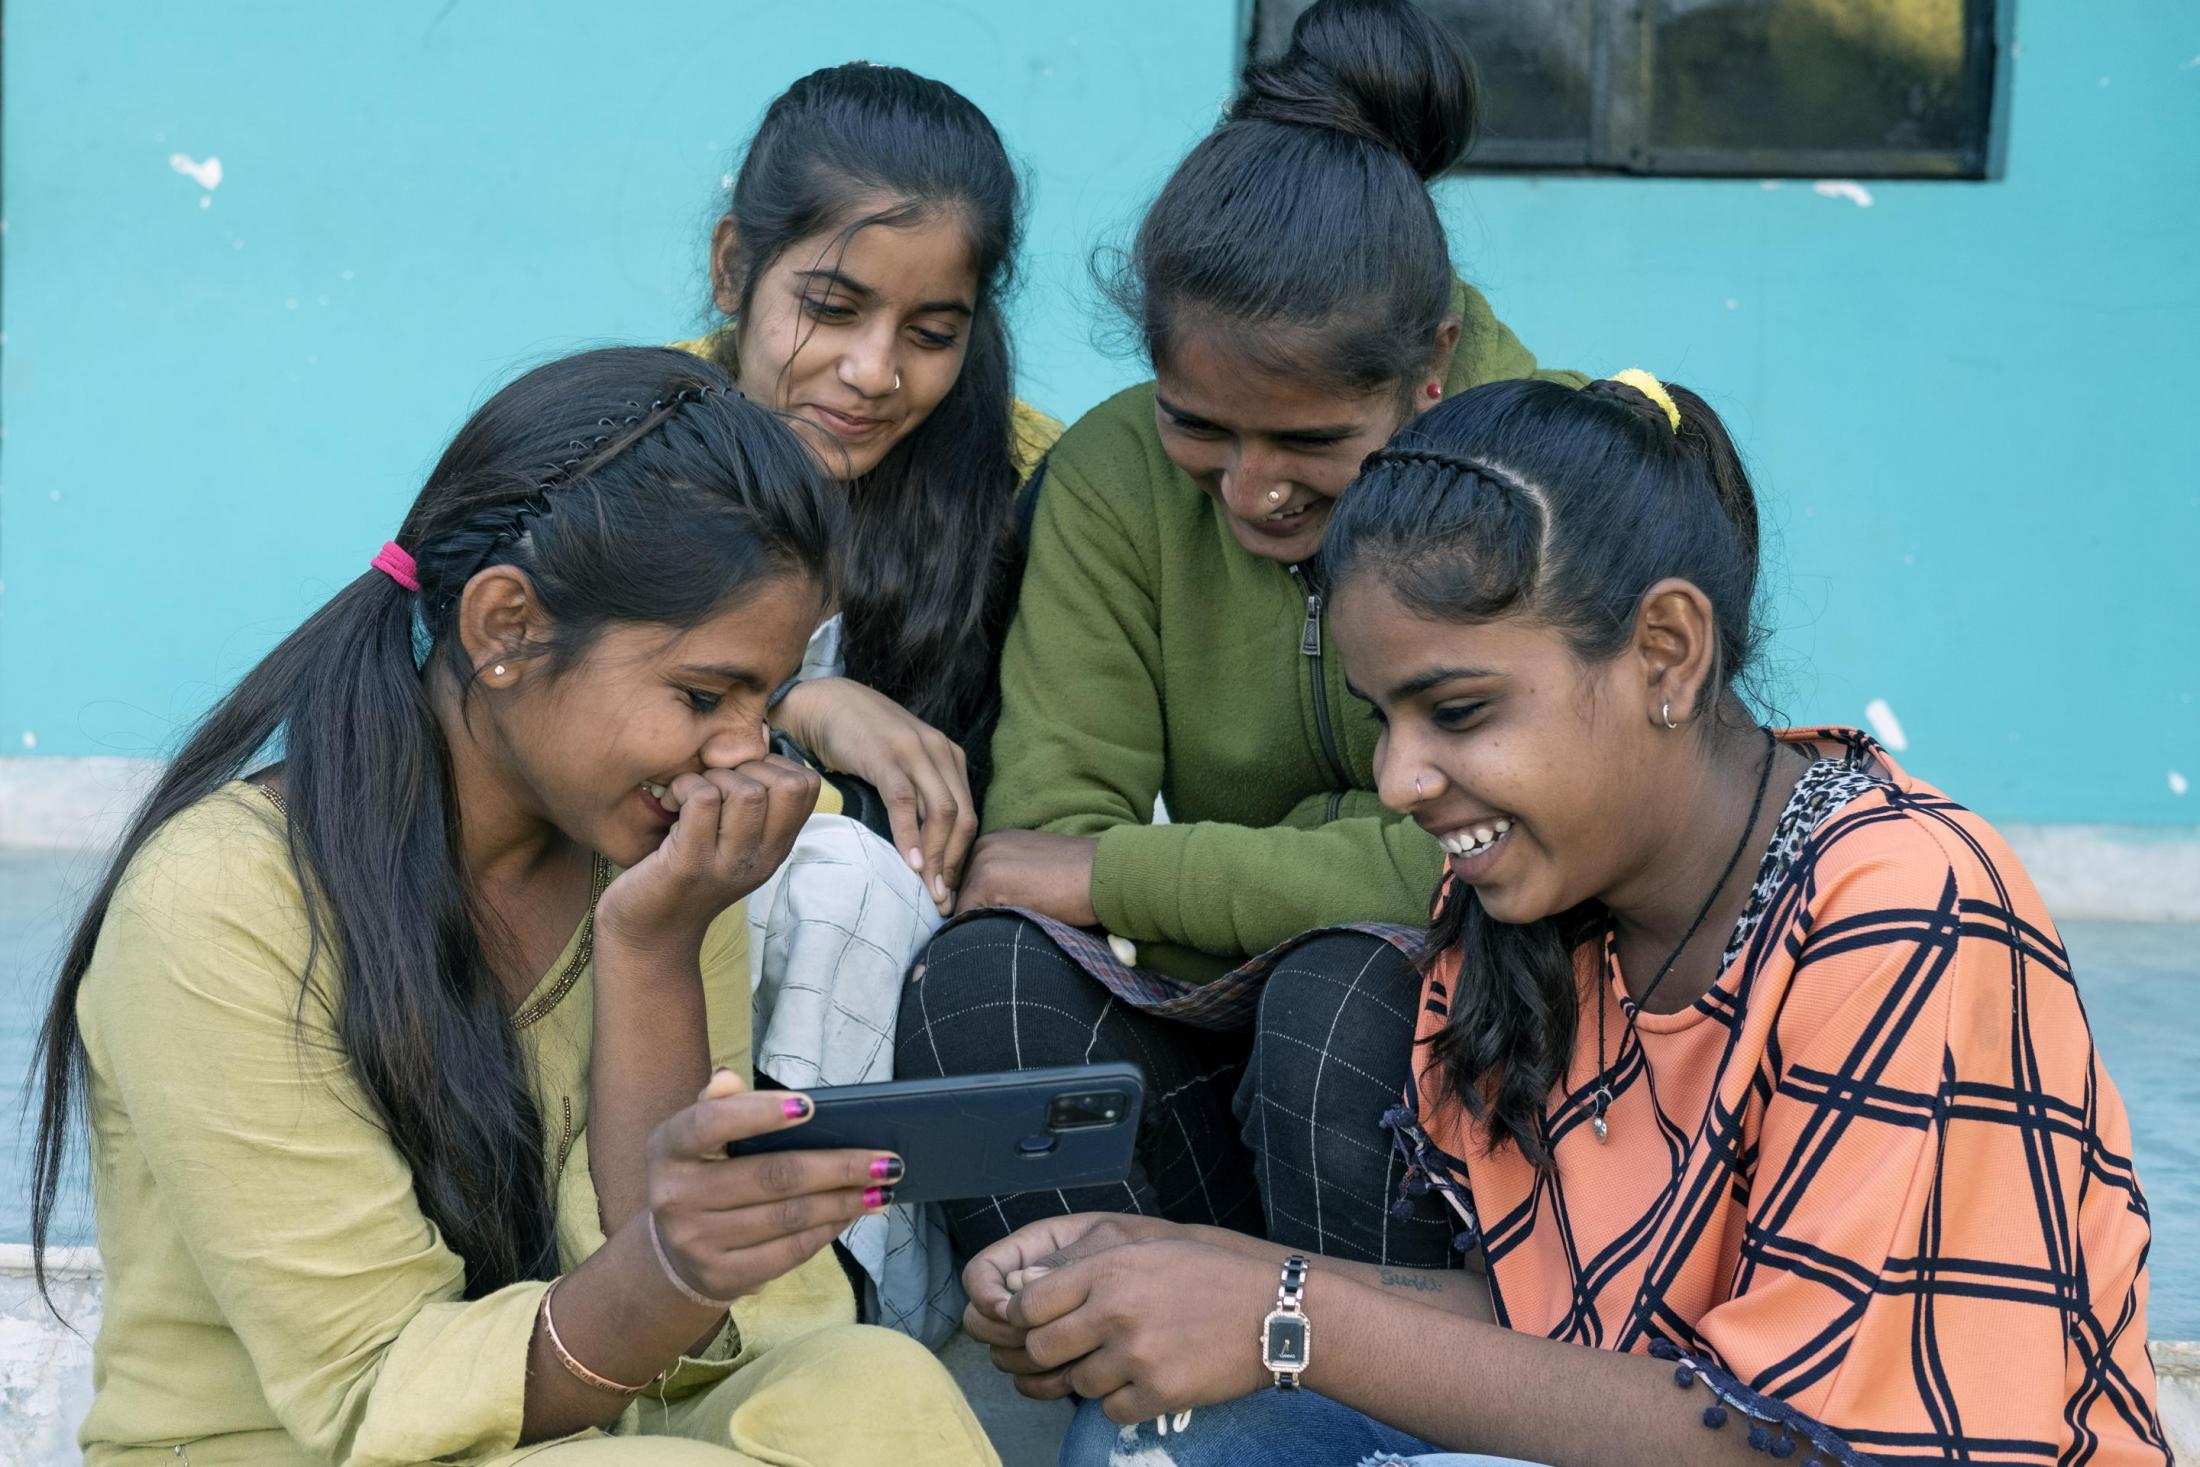 Girls in India laugh over a tablet.